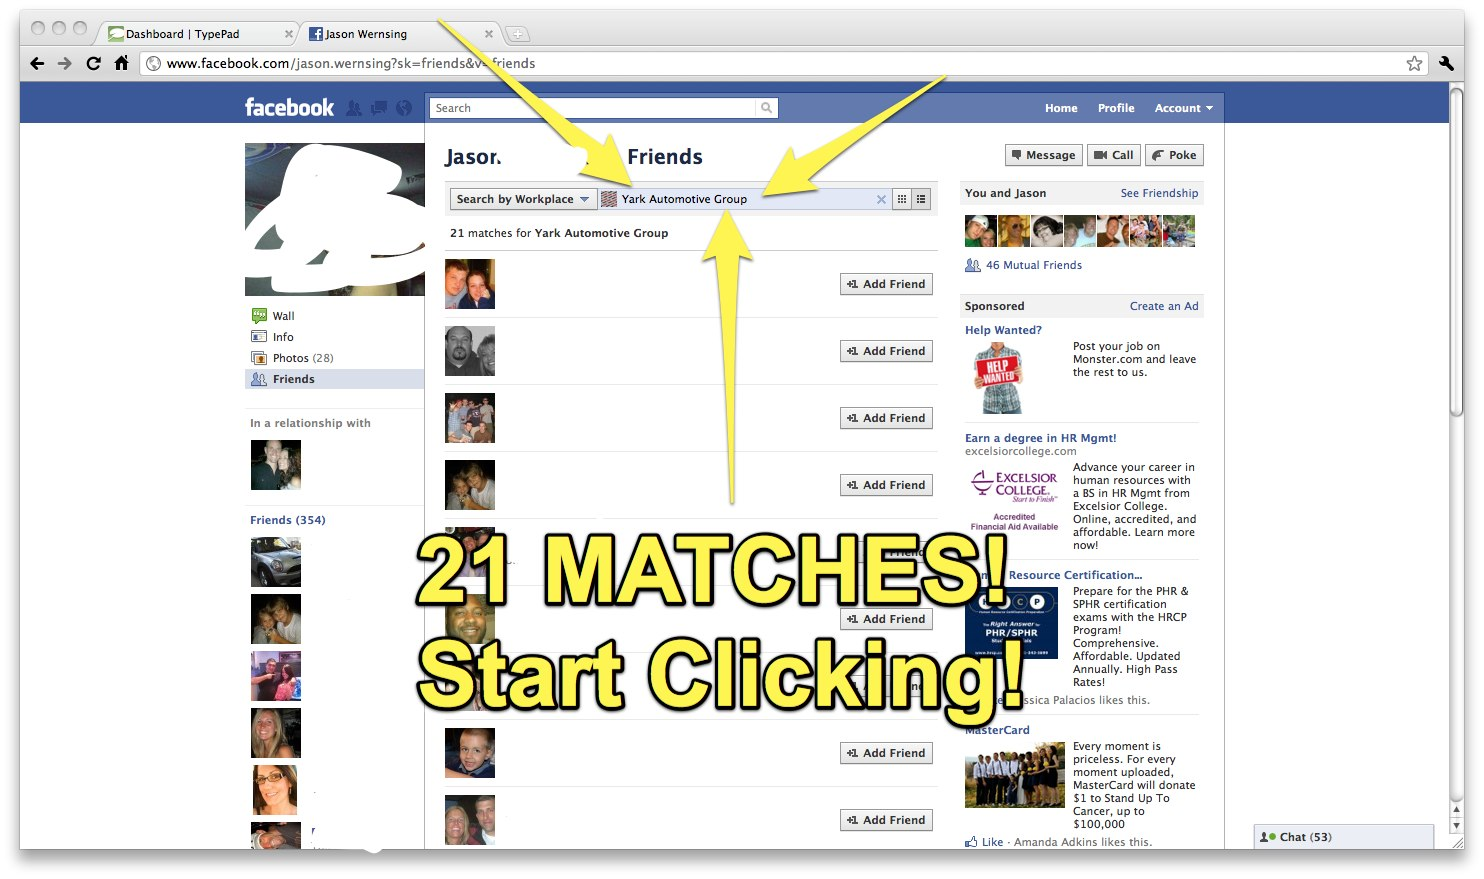 Sneaky Recruiting: People on Facebook    - Fistful of Talent